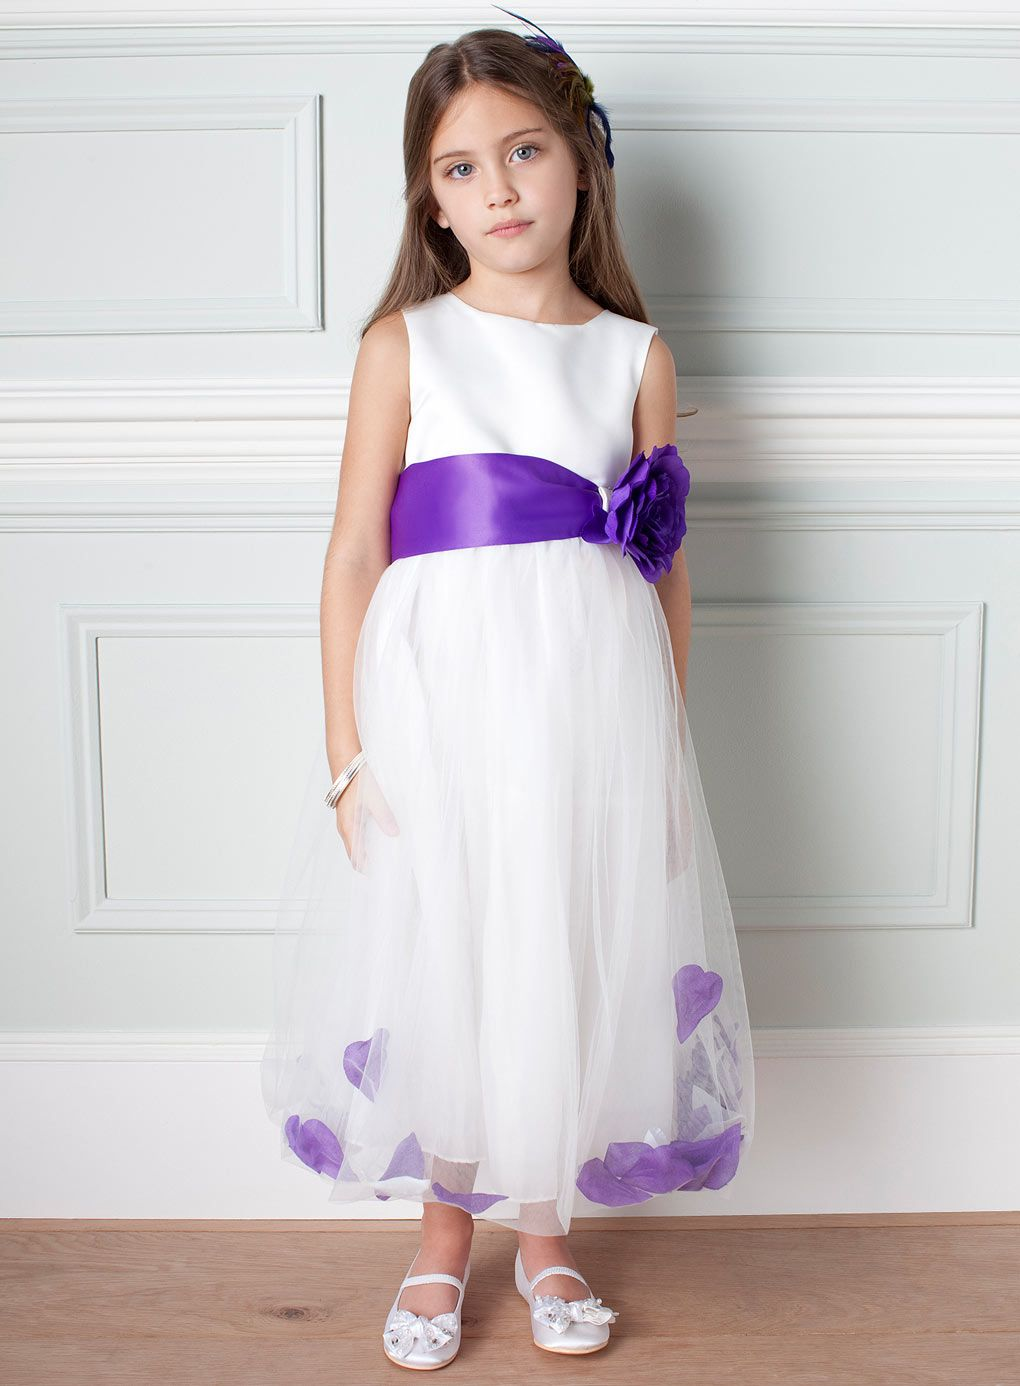 Kids bridesmaid dresses good dresses purple bridesmaid dress and wedding 3 purple bridesmaid dress and wedding 3 the big day ombrellifo Gallery